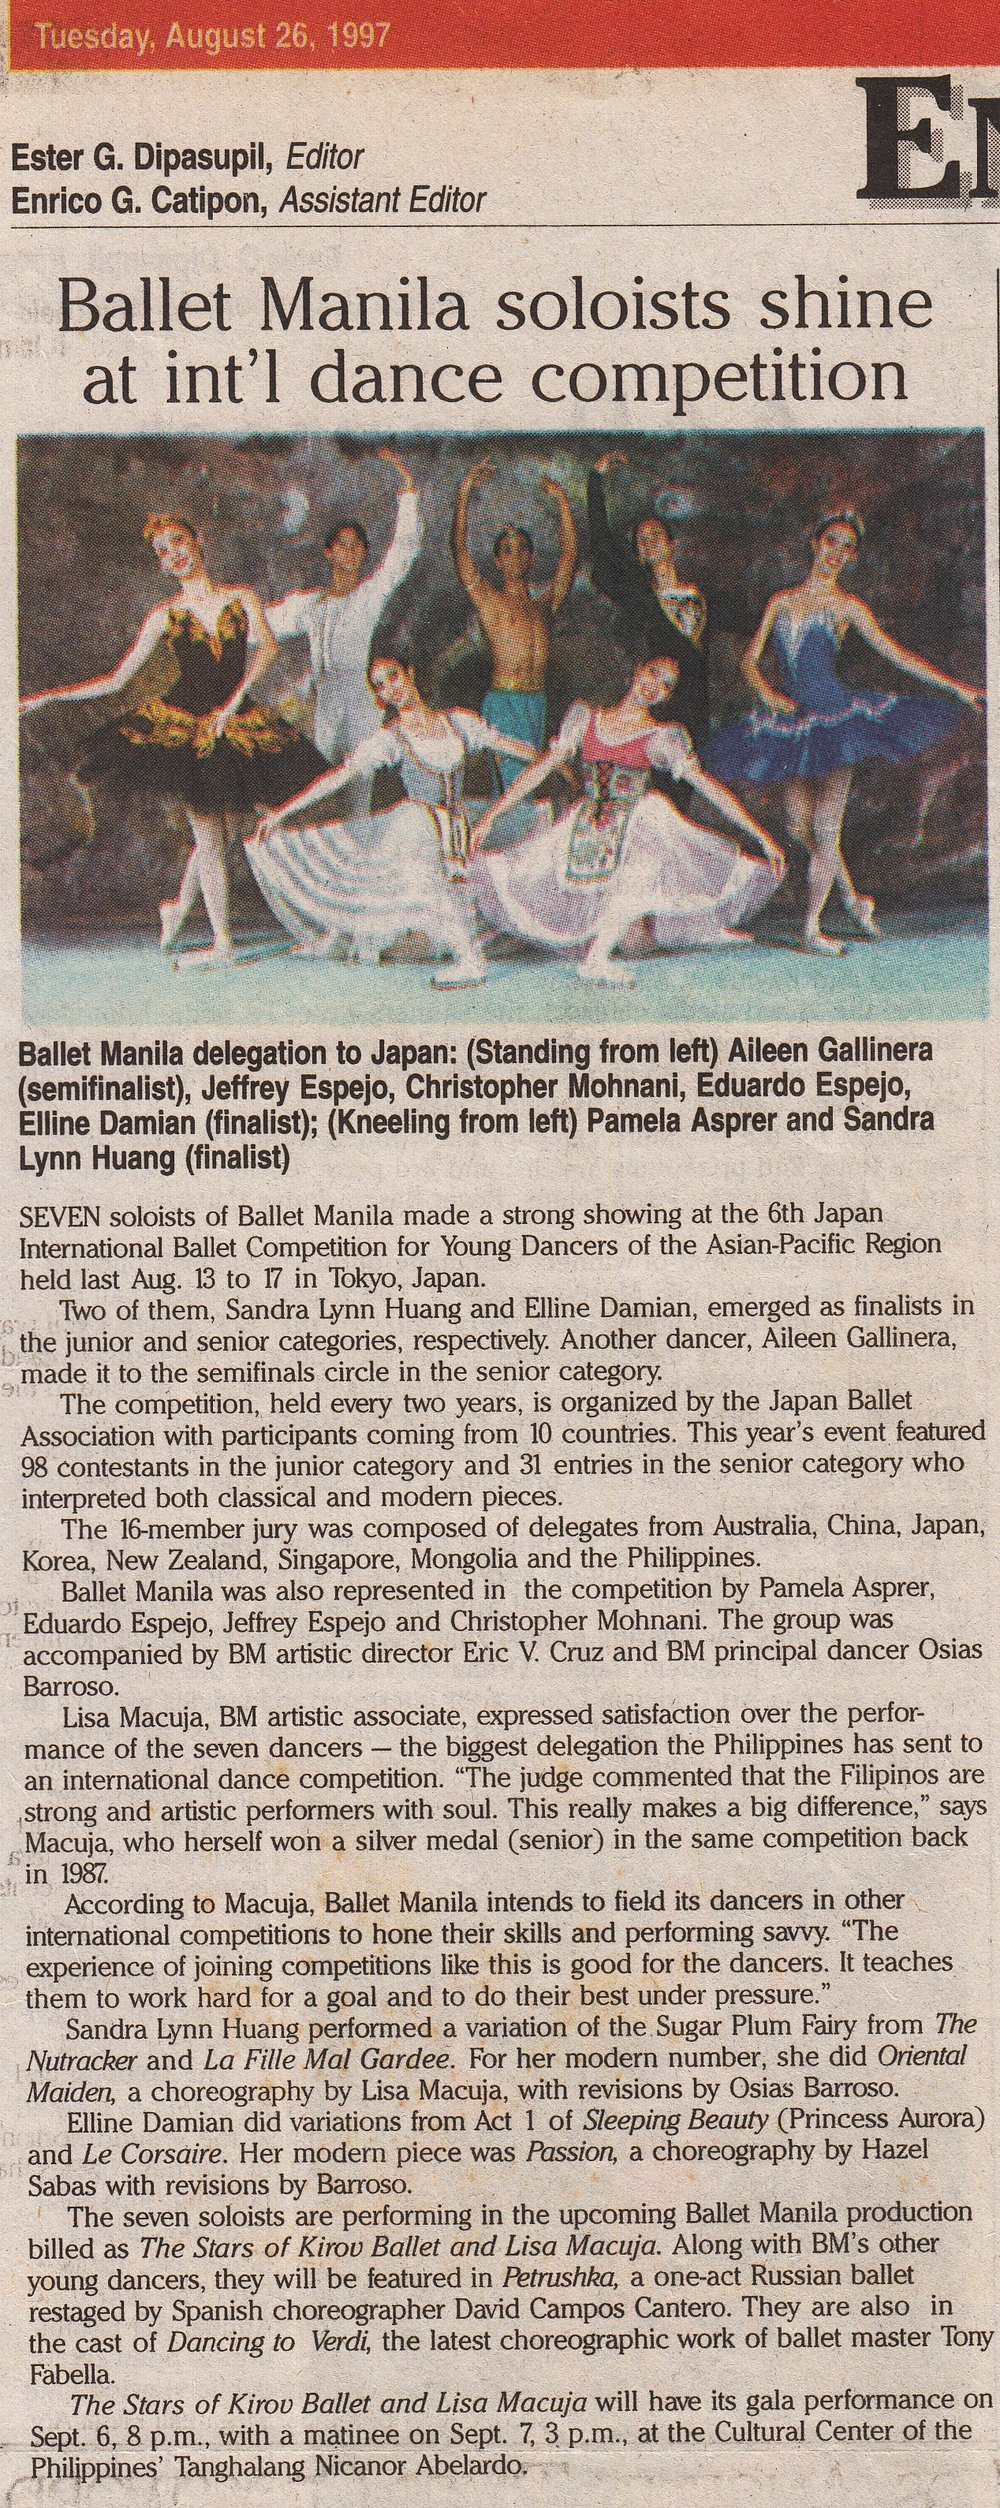 An item in    The Manila Standard    after the group's return also announces the dancers' participation in a gala performance,    The Stars of Kirov Ballet and Lisa Macuja   . From the Ballet Manila Archives collection